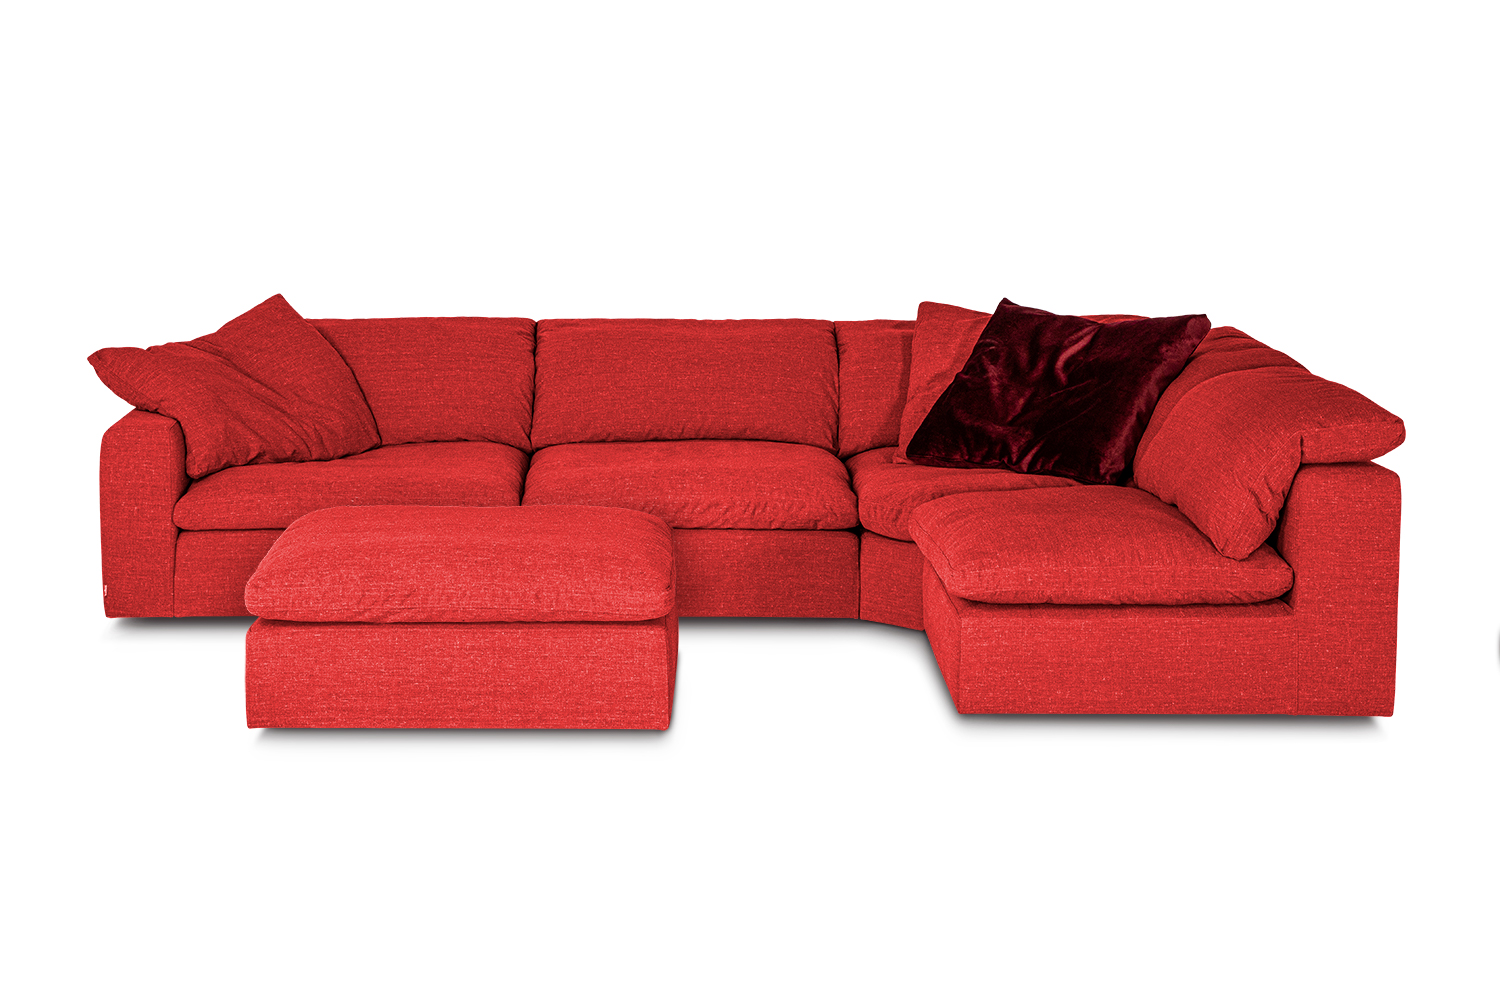 In picture Tribeca A11E1 Fabric Sahara8200 with footstool